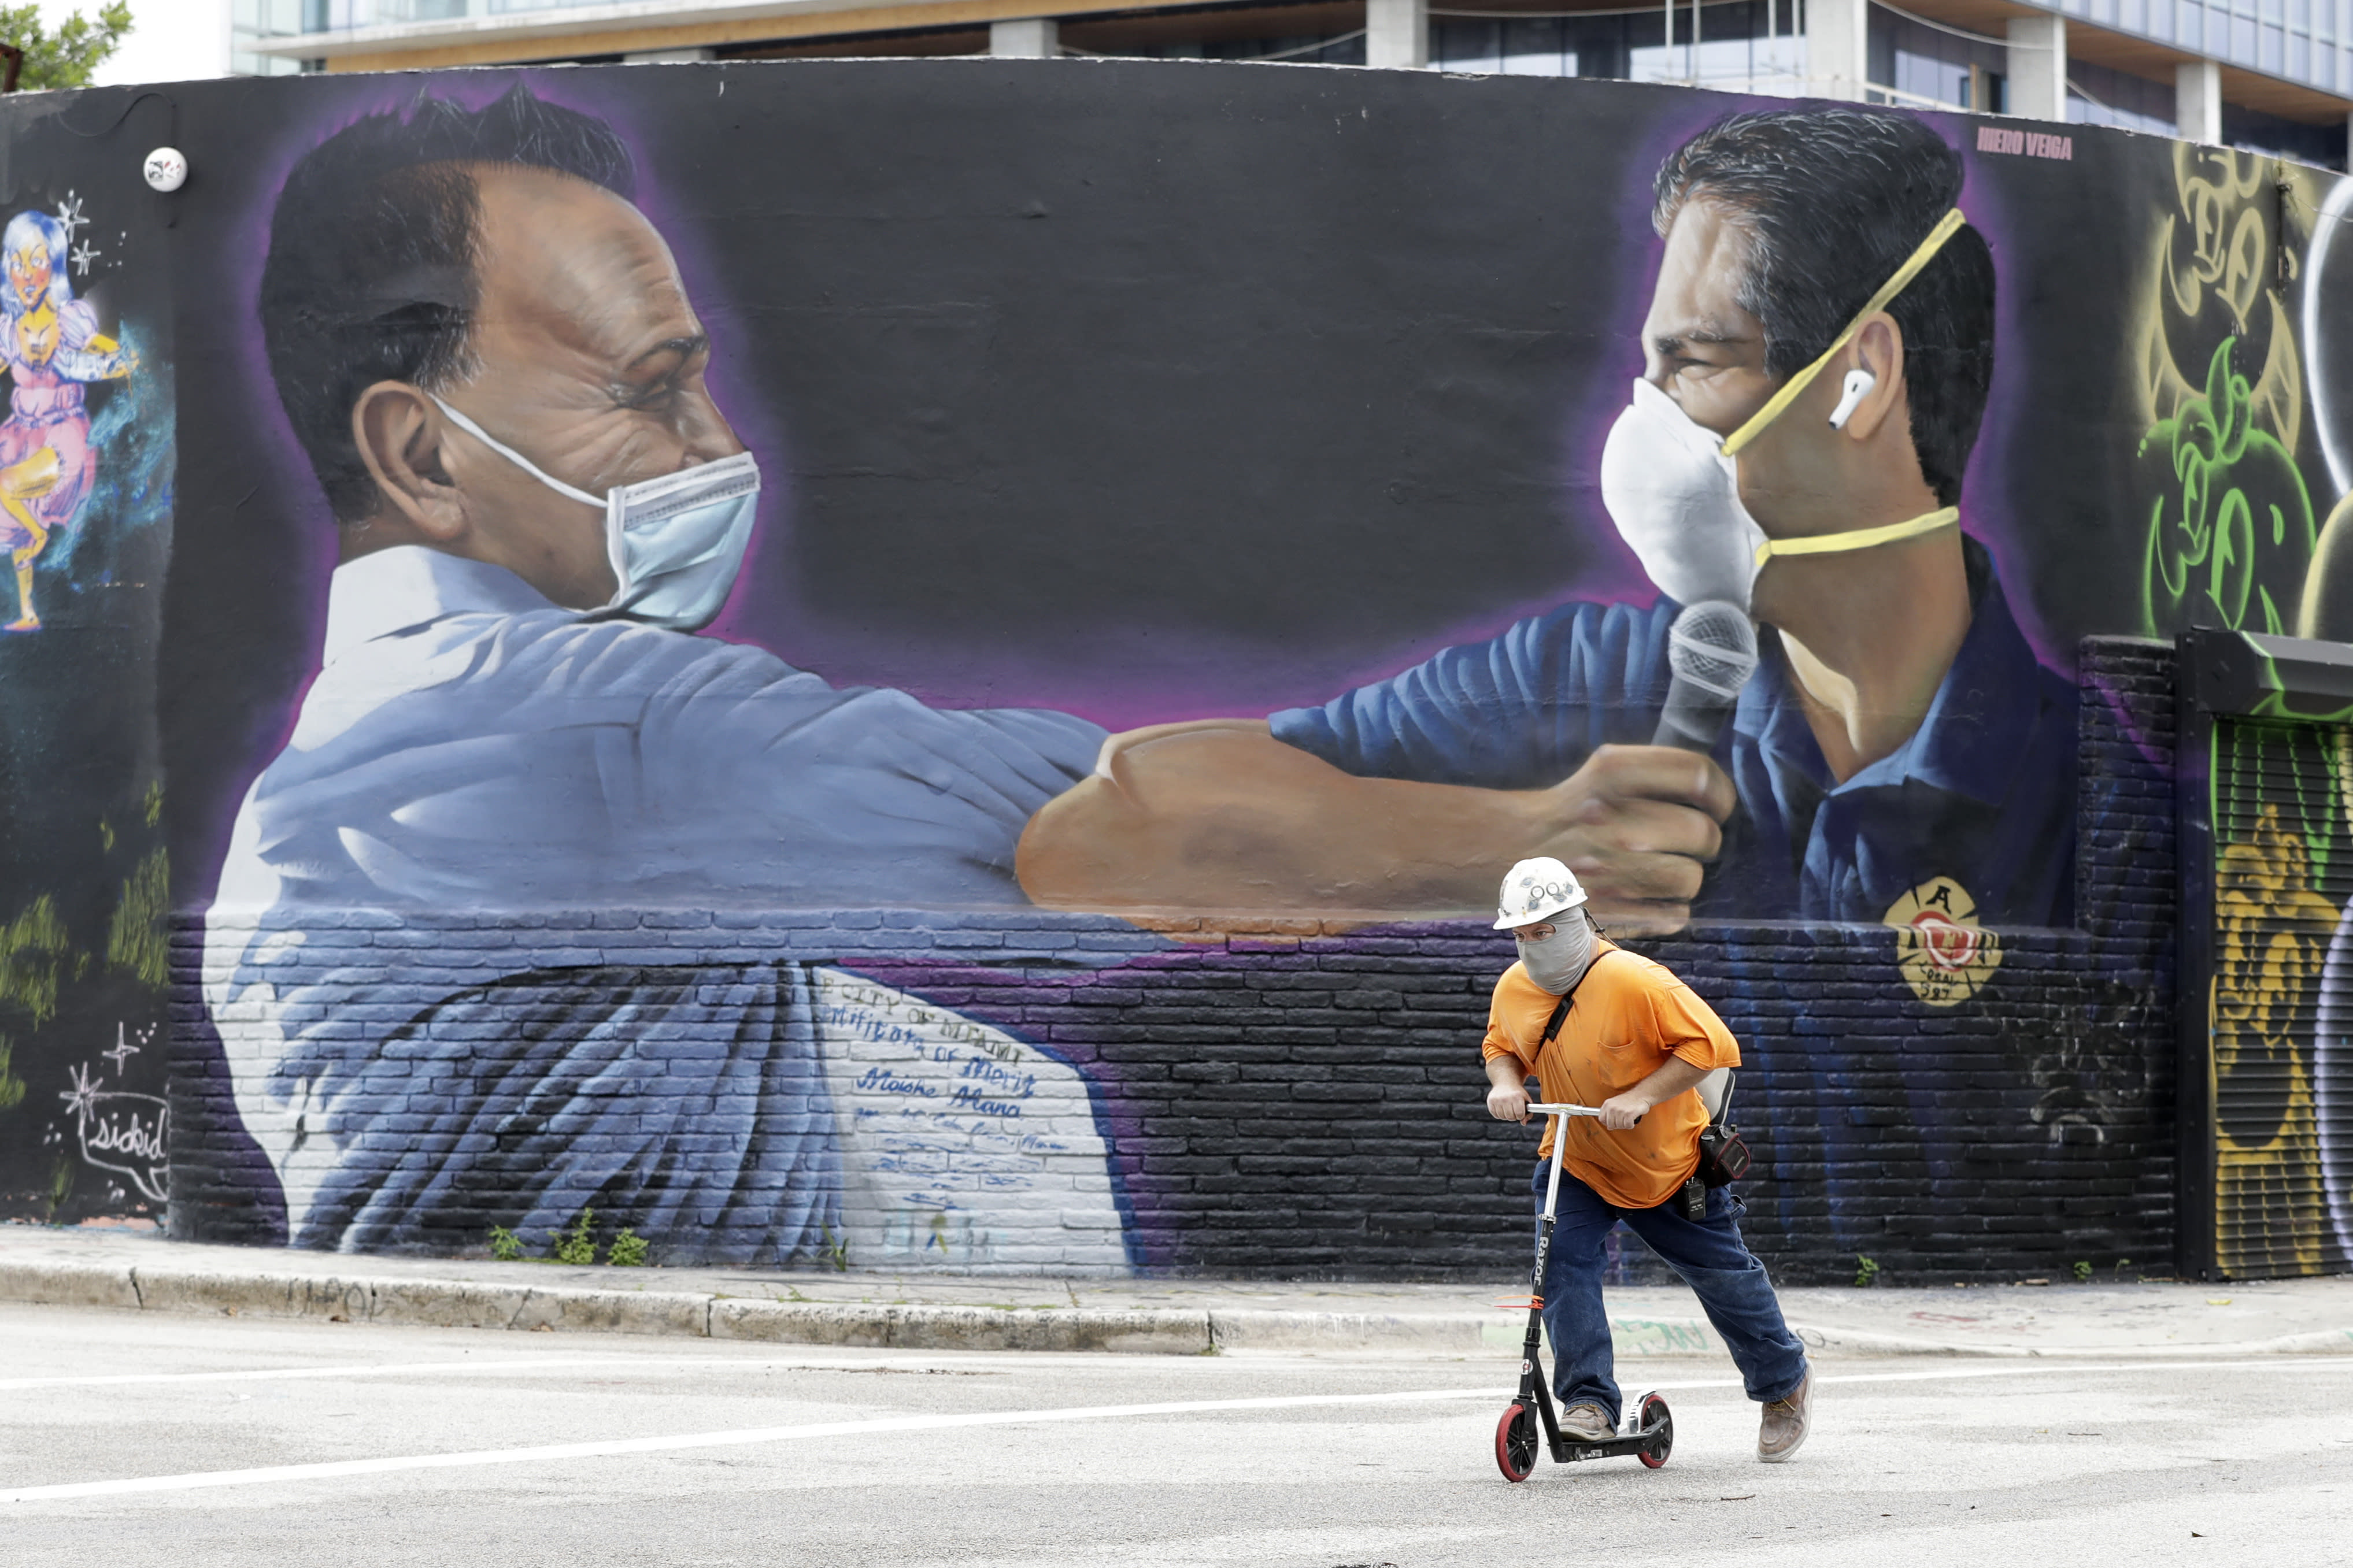 """A construction worker rides a scooter past a mural by Hiero Veiga of billionaire businessman Moishe Mana, left, and City of Miami Mayor Francis X. Suarez wearing masks Monday, July 13, 2020, in the Wynwood Arts District of Miami. Florida's rapidly increasing number of coronavirus cases is turning Miami into the """"epicenter of the pandemic,"""" a top doctor warned Monday, while an epidemiologist called the region's situation """"extremely grave."""" (AP Photo/Wilfredo Lee)"""